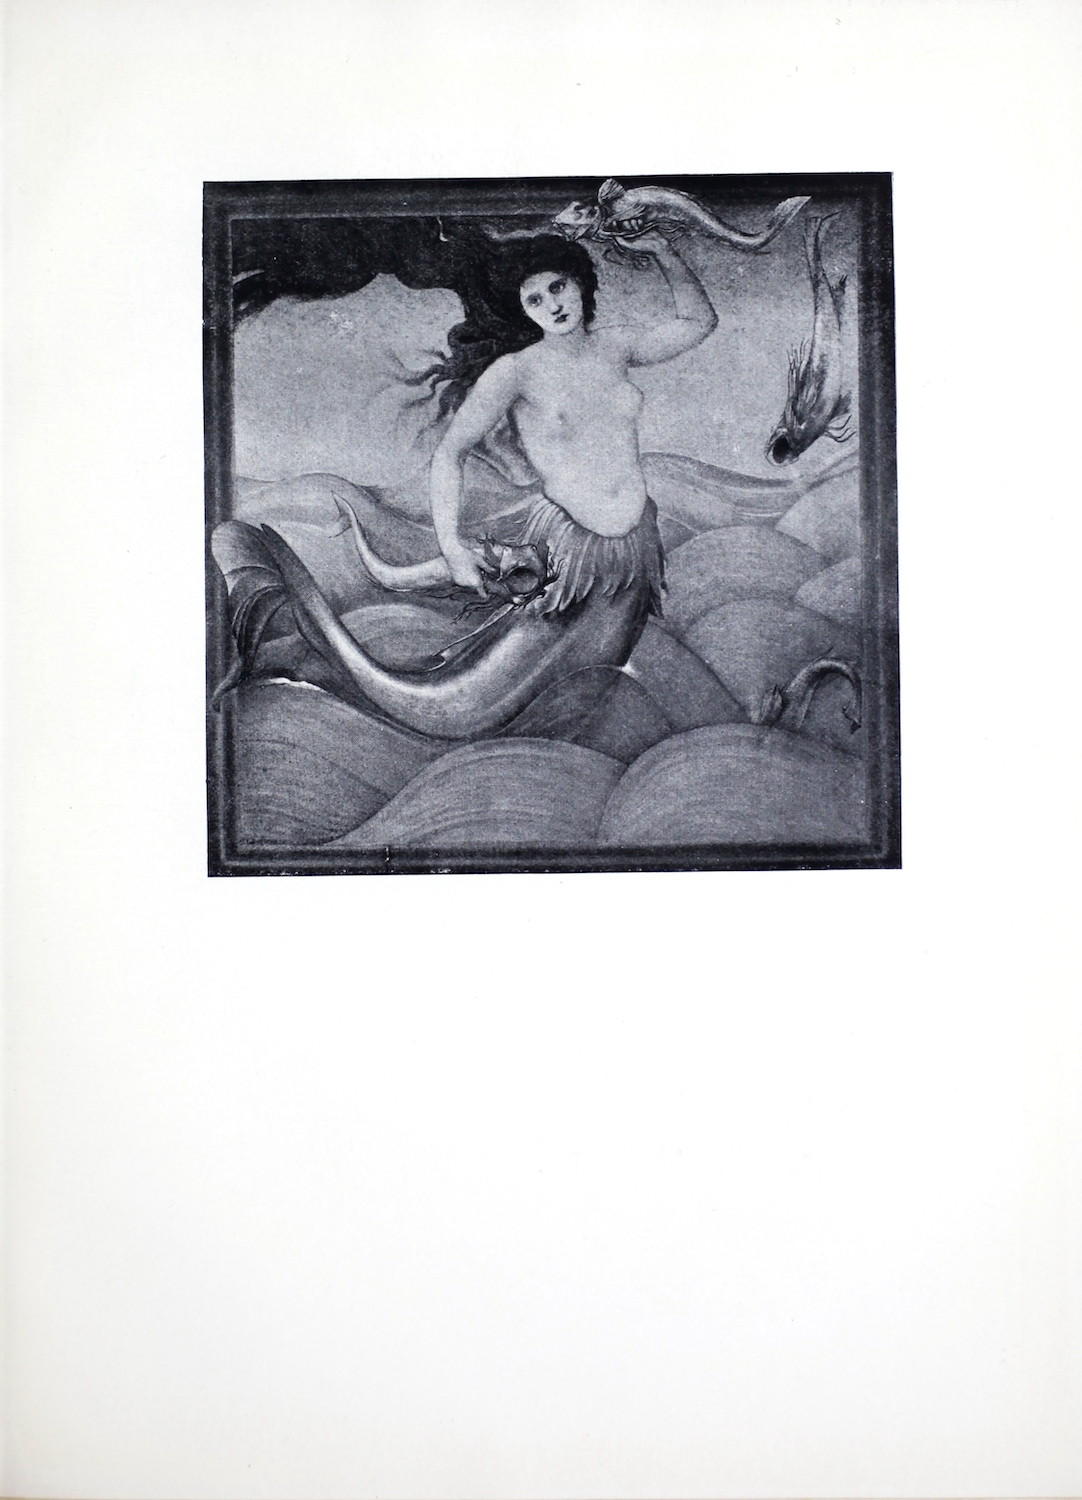 The halftone reproduction of Edward Burne Jones' 1881 painting of a mythical sea nymph leaping across a tumultuous ocean surface is framed and centred on the page in portrait orientation. The sea nymph, or mermaid, is facing the viewer. Her upper body is of a human female. Her lower body is of a fish. Her hair is loose and waves through the air, taking up much of the upper left corner of the image. Her head is tilted to the left. Her left arm is raised up and she holds one fish above her head. The right arm rests at her side where she grips a second fish. She has a ridge of fins skirting her lower torso where her fish form begins. Her tail swings out behind her to the left of the image.